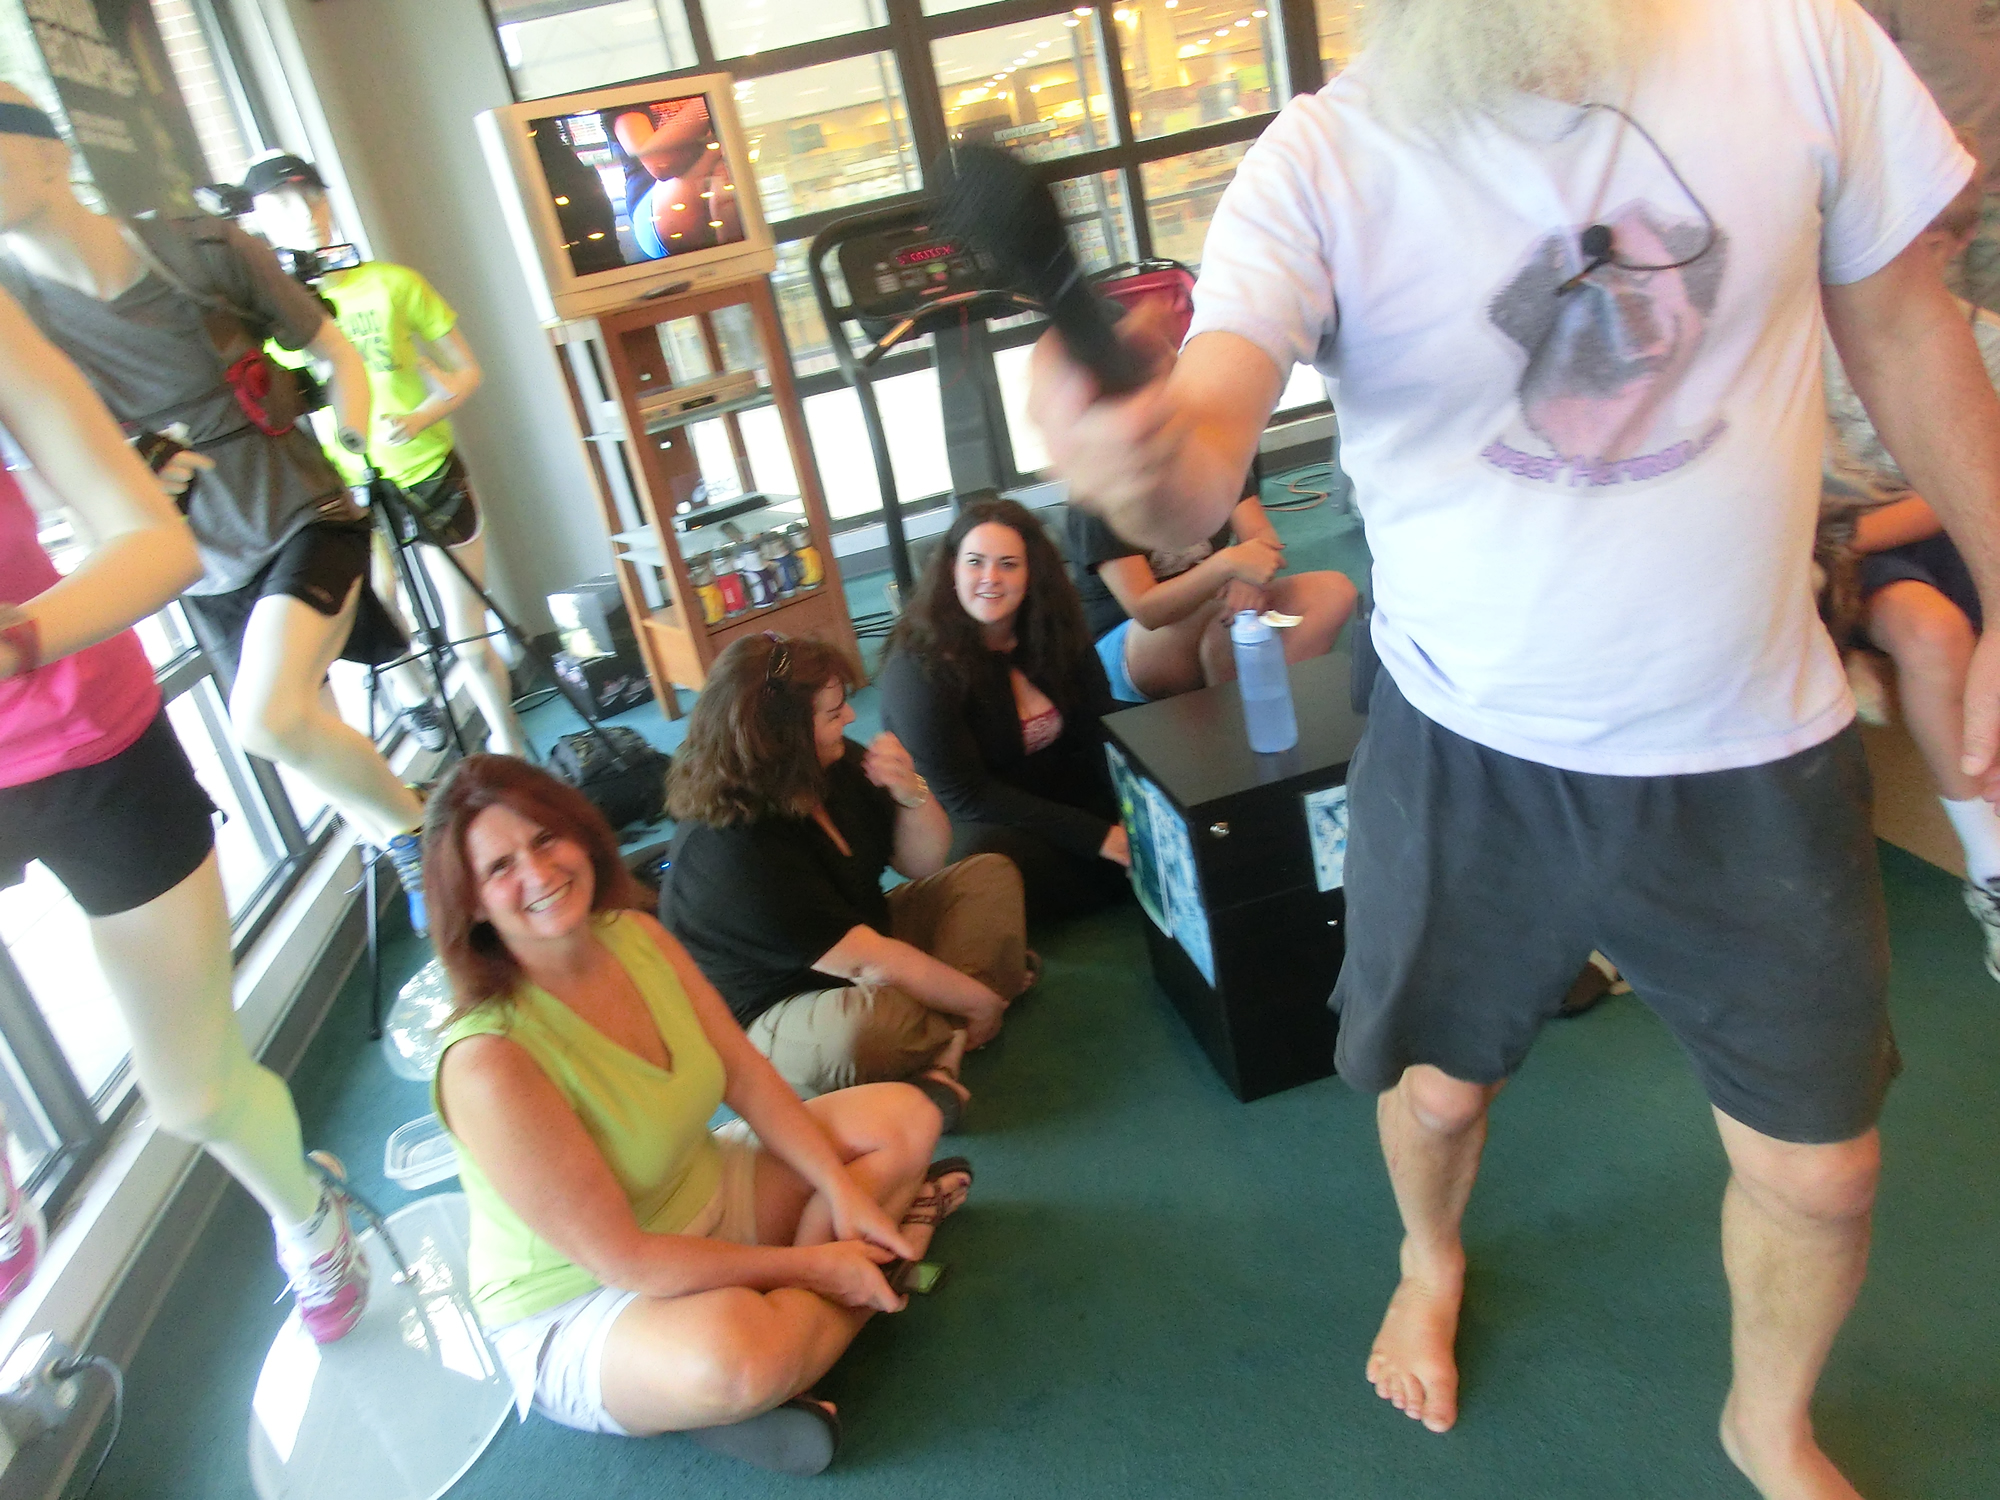 2012-07-20 Ken Bob at Boulder Running Company, Littleton CO